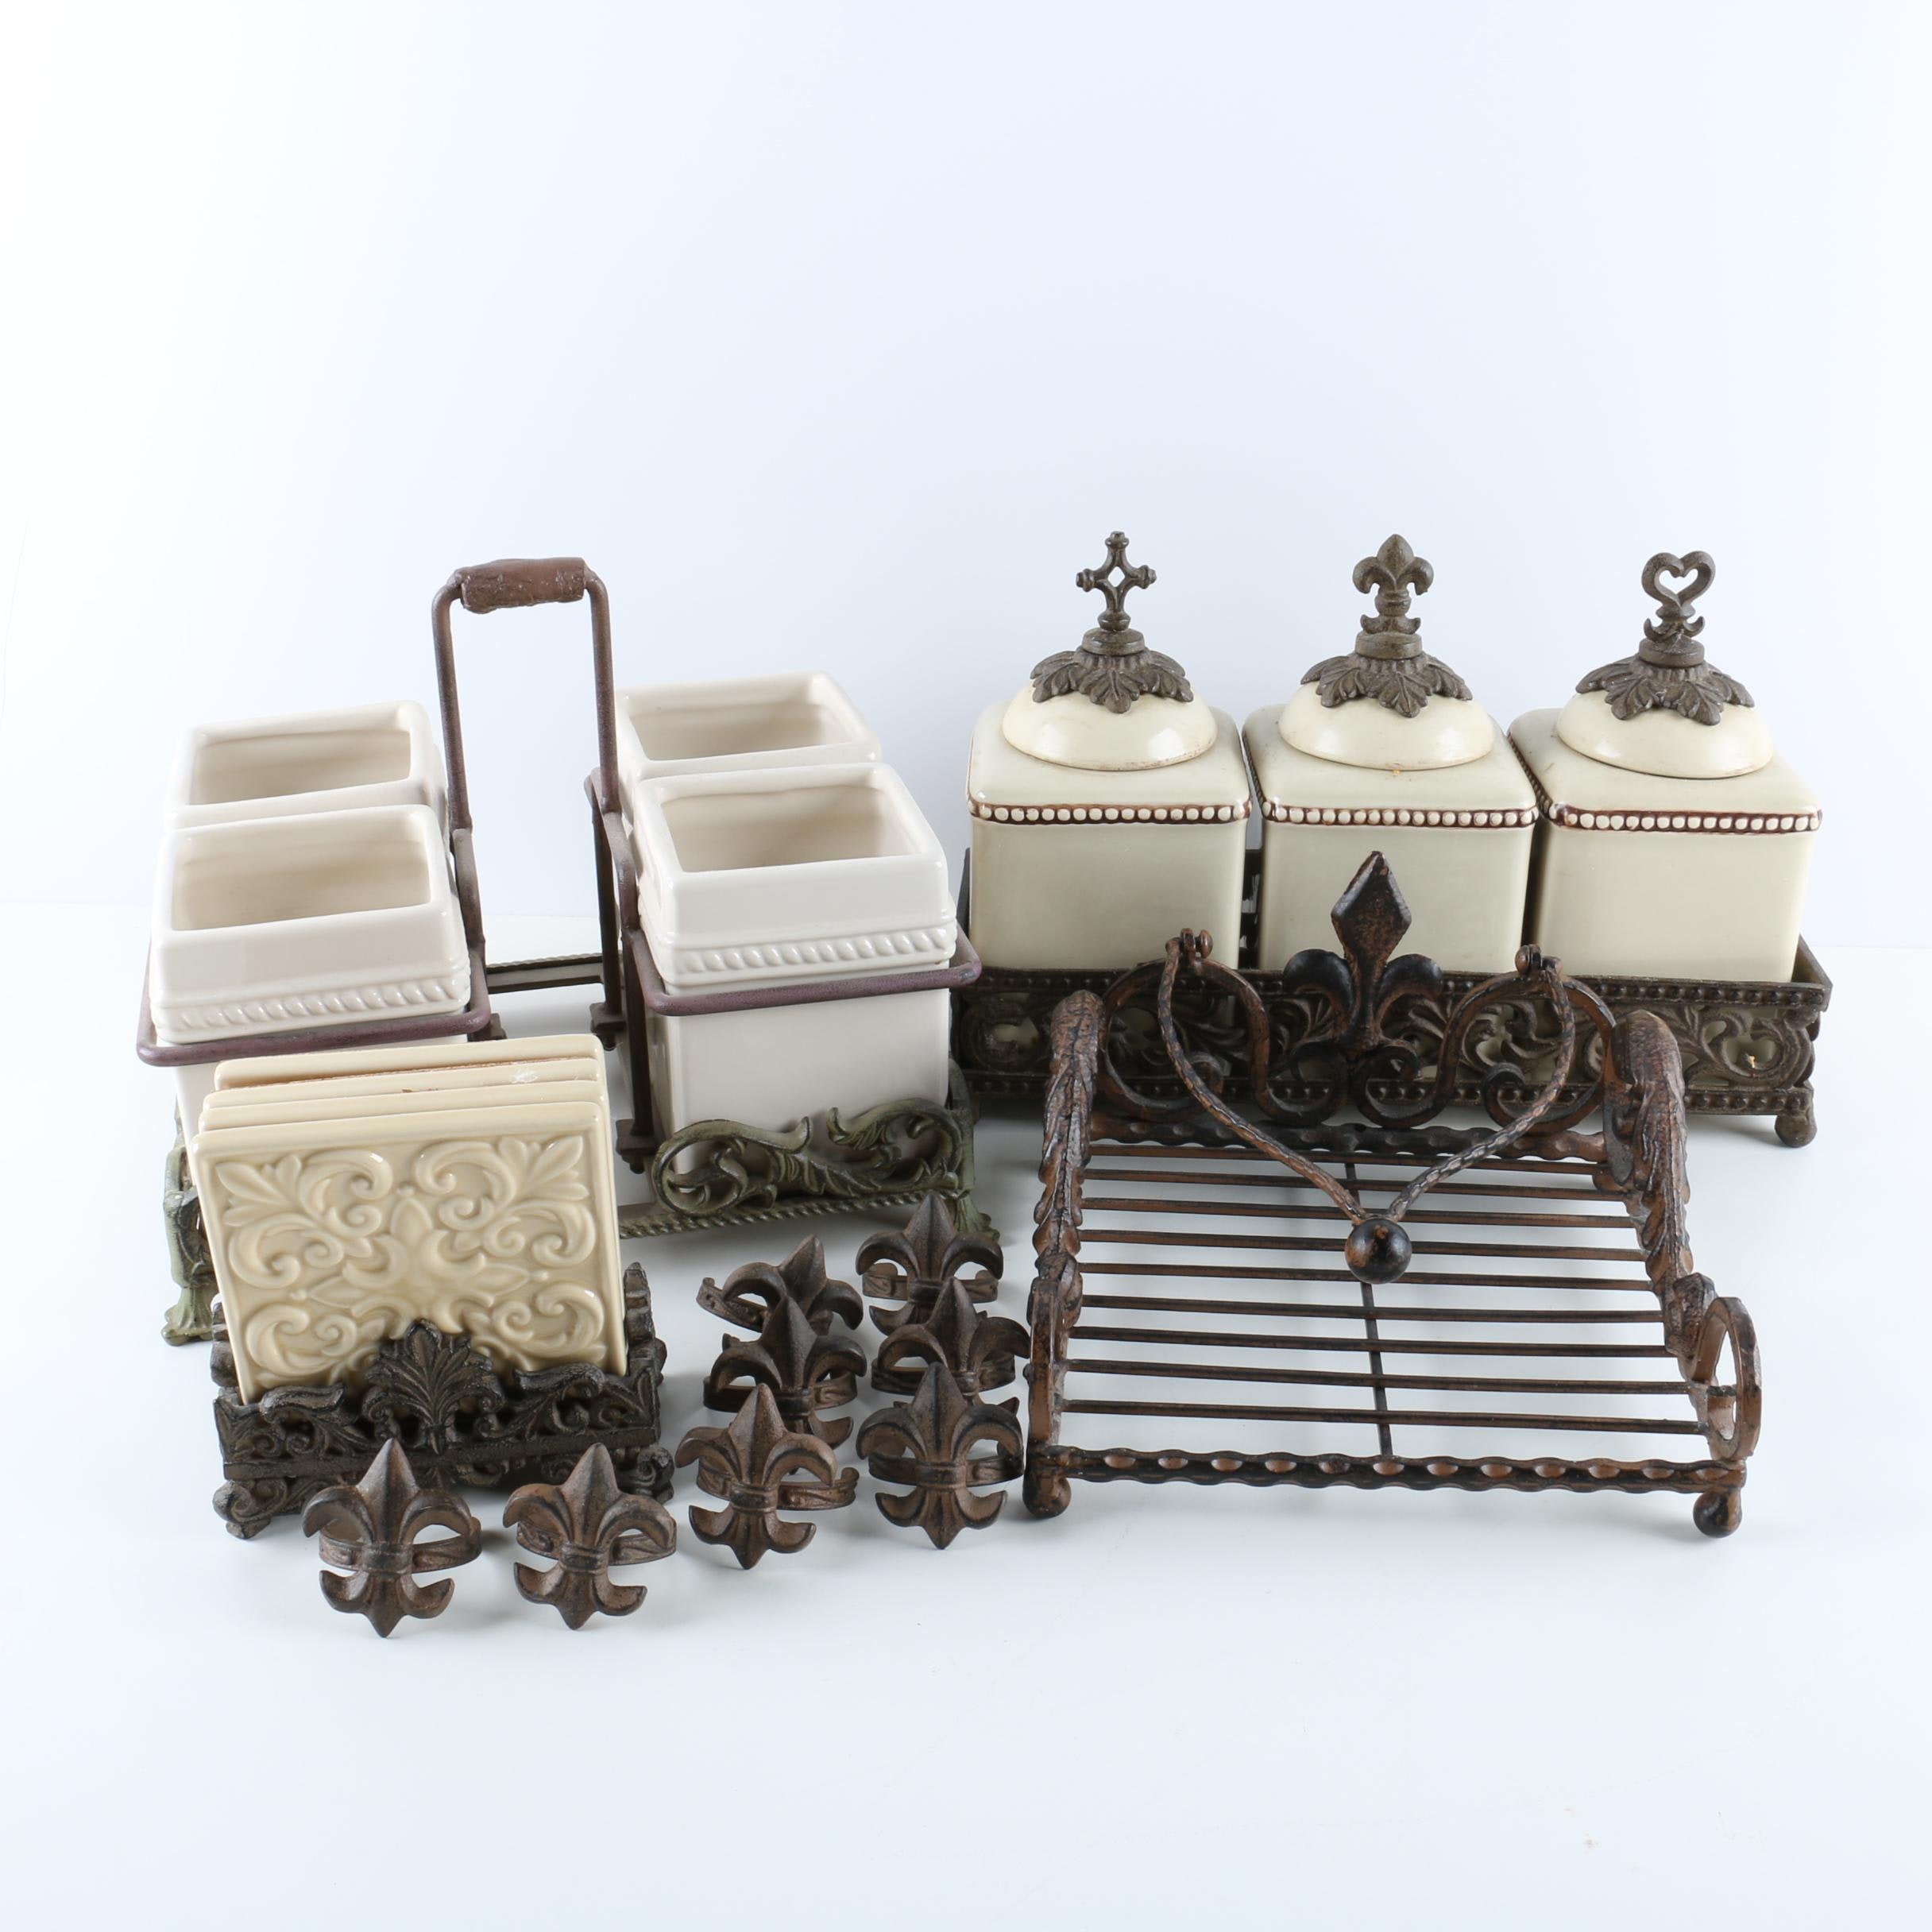 Ceramic Canisters and Flatware Caddy with Napkin and Coaster Set ... & Ceramic Canisters and Flatware Caddy with Napkin and Coaster Set : EBTH